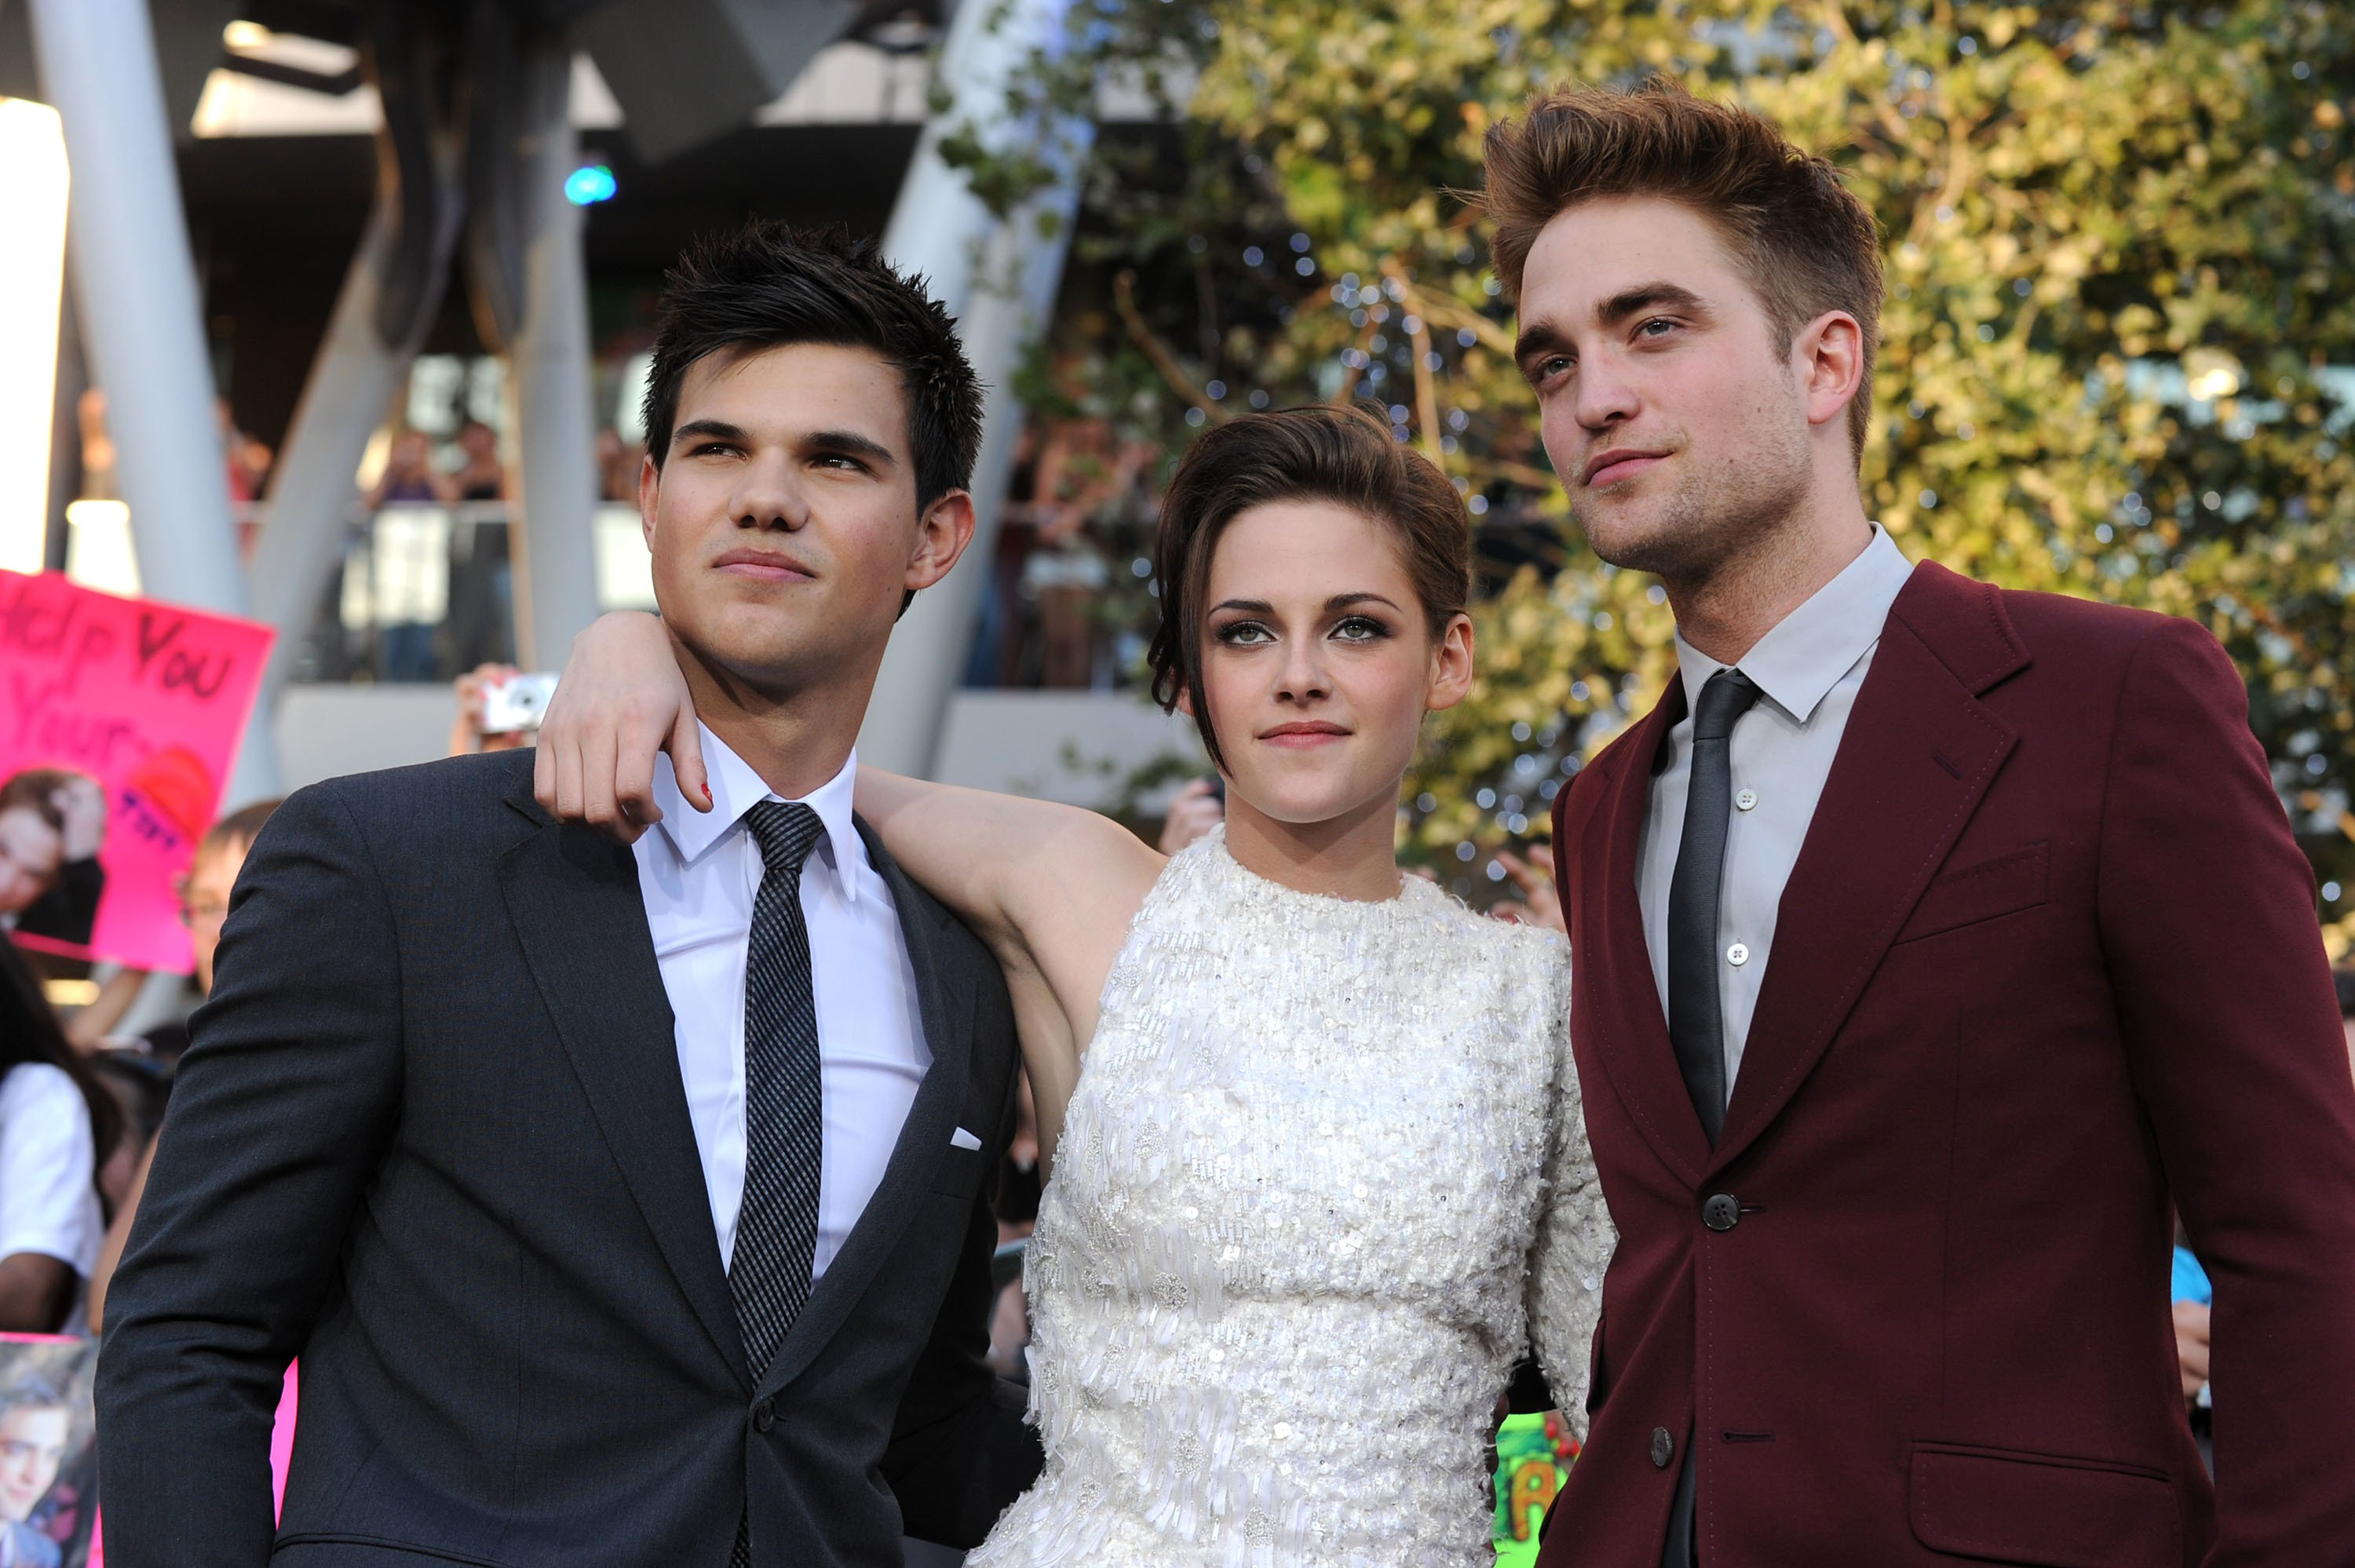 Twilight stars, Taylor Lautner, Kristen Stewart and Robert Pattinson| Photo: Getty Images